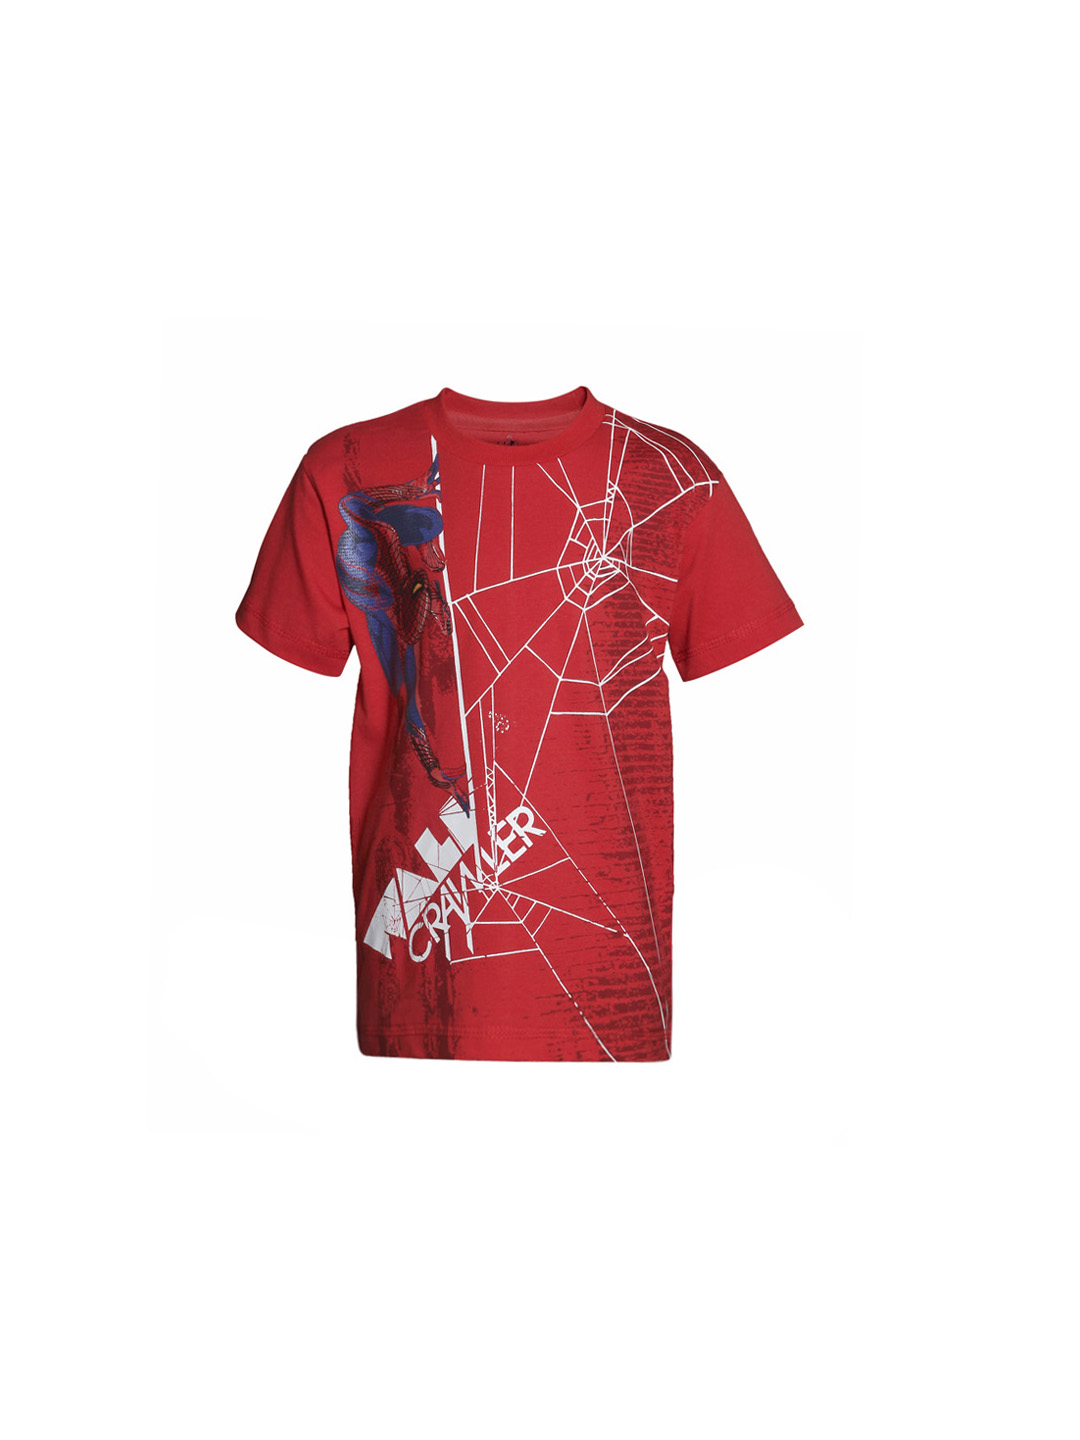 The Amazing Spiderman Boys Red T-Shirt